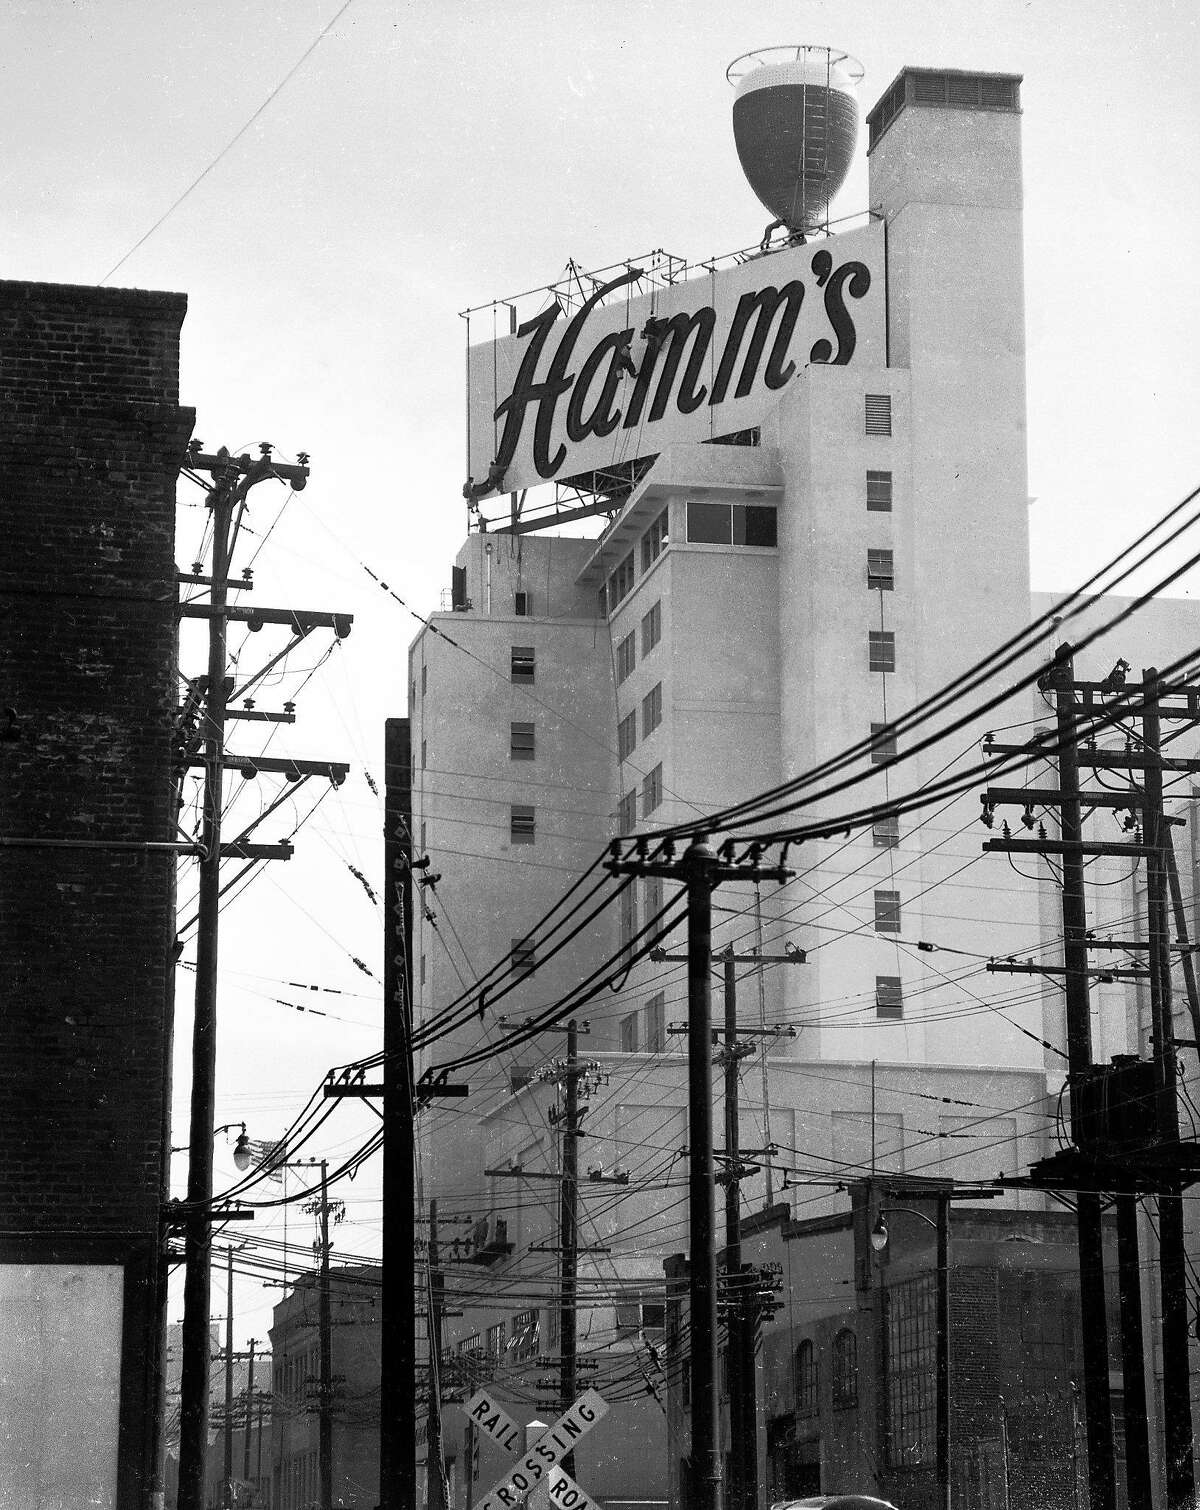 """June 24, 1954: If you were a kid in the 1950s, 1960s or 1970s, this Hamm's Brewery sign at 1550 Bryant Street was likely your happy place. The chalice at the top had neon lights that made the glass look like it was """"filling up"""" with beer at night, visible from the Central Freeway on the way to Noe Valley, the Castro and beyond. This photo was taken in 1954, when the Hamm's chalice was replacing the Rainier Brewery sign. (Look closely, and you can see workers on scaffolding.) Longtime Chronicle photographer Bob Campbell, an overseas photographer during World War II, was sent to take photos of the new sign - and took six from different angles throughout the city. The Hamm's sign was taken down in 1975."""